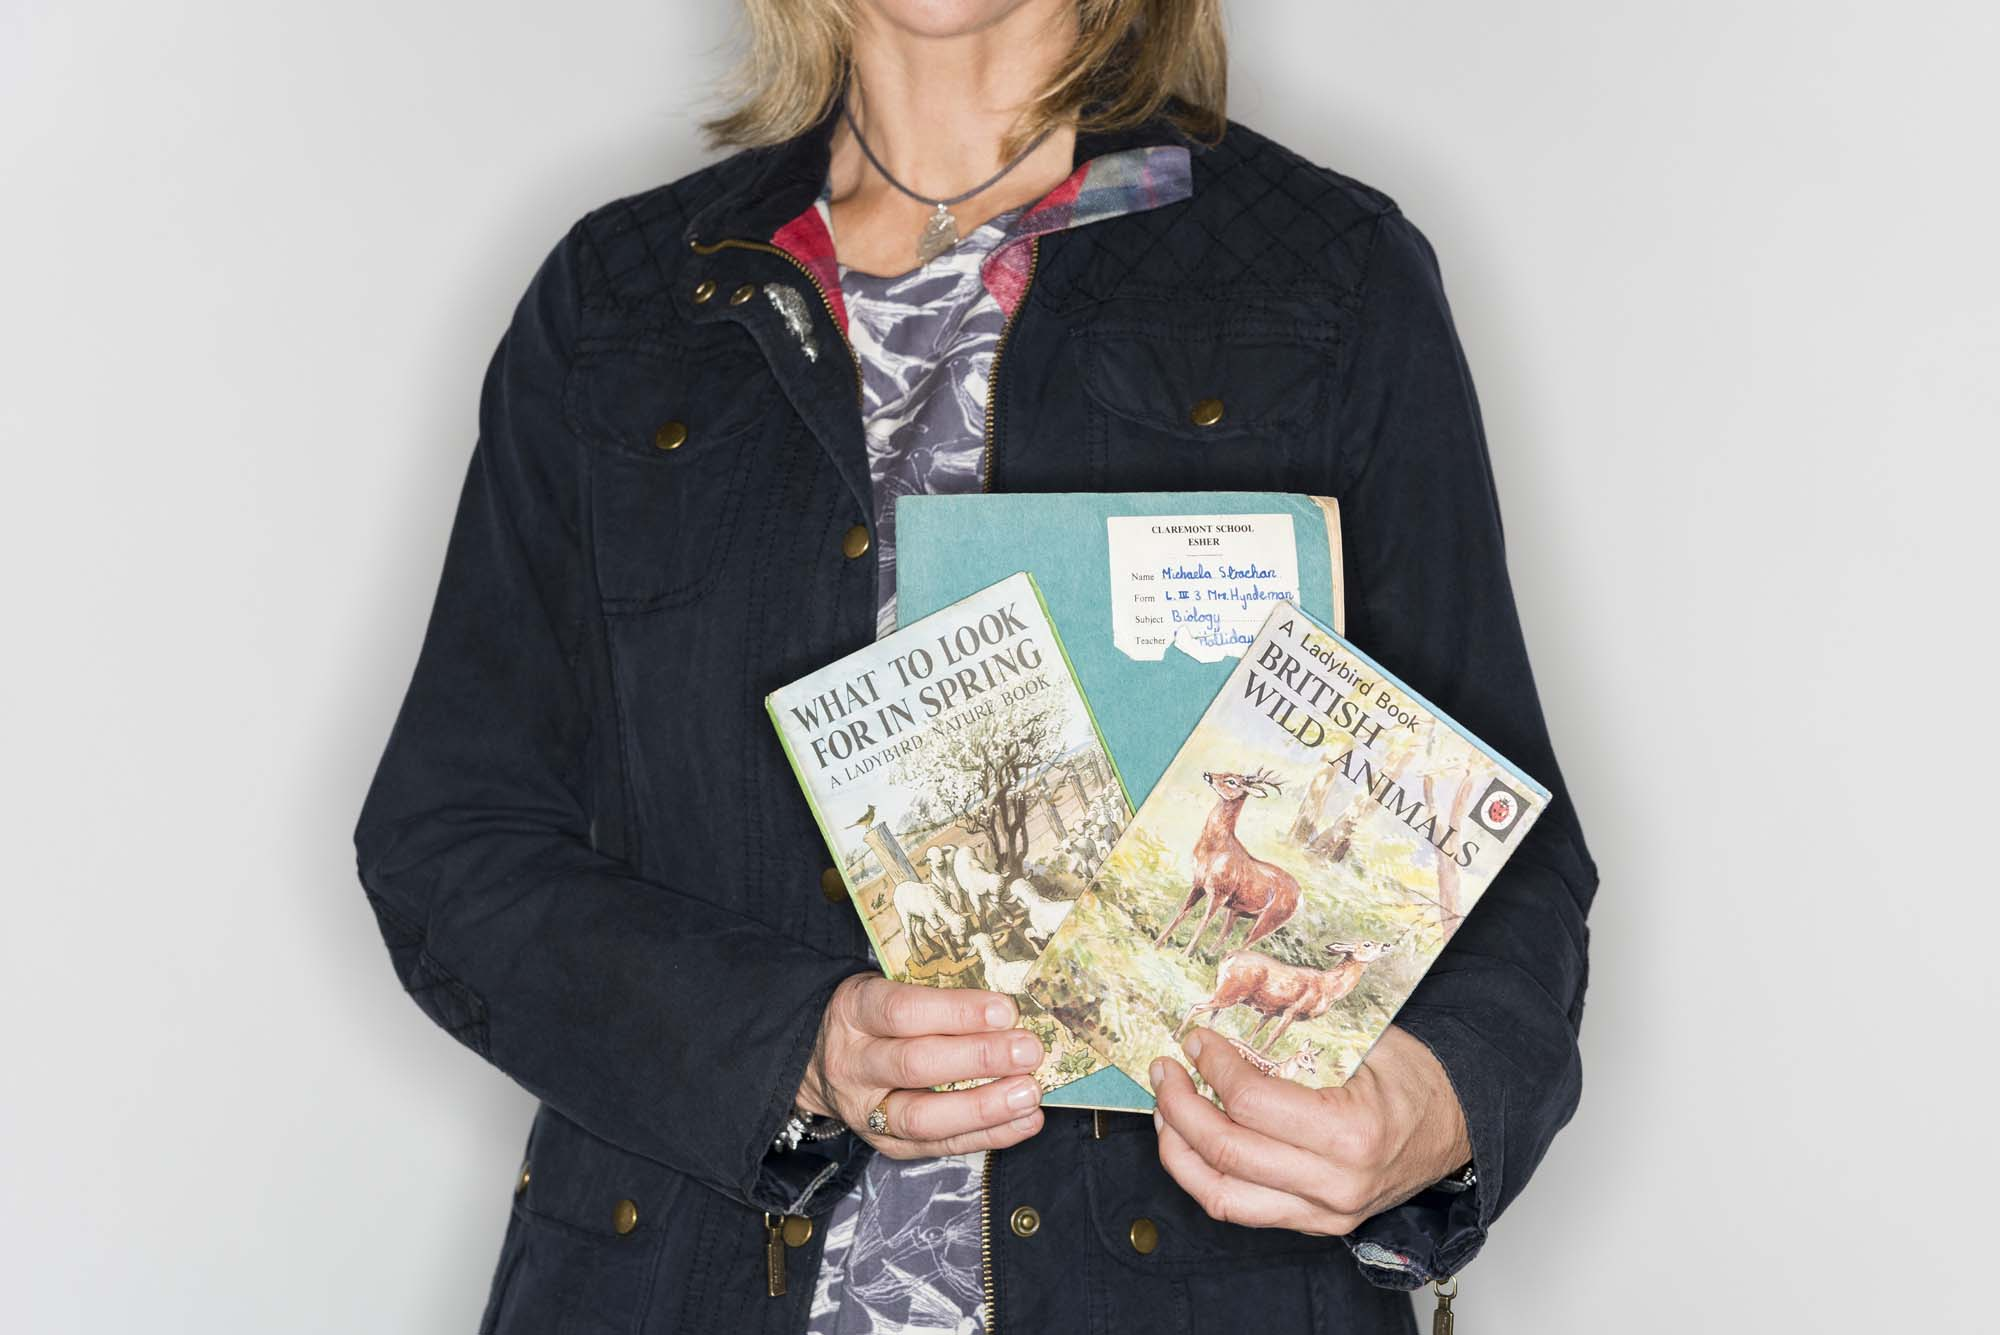 a cropped image of a woman holding two Ladybird books and an exercise book